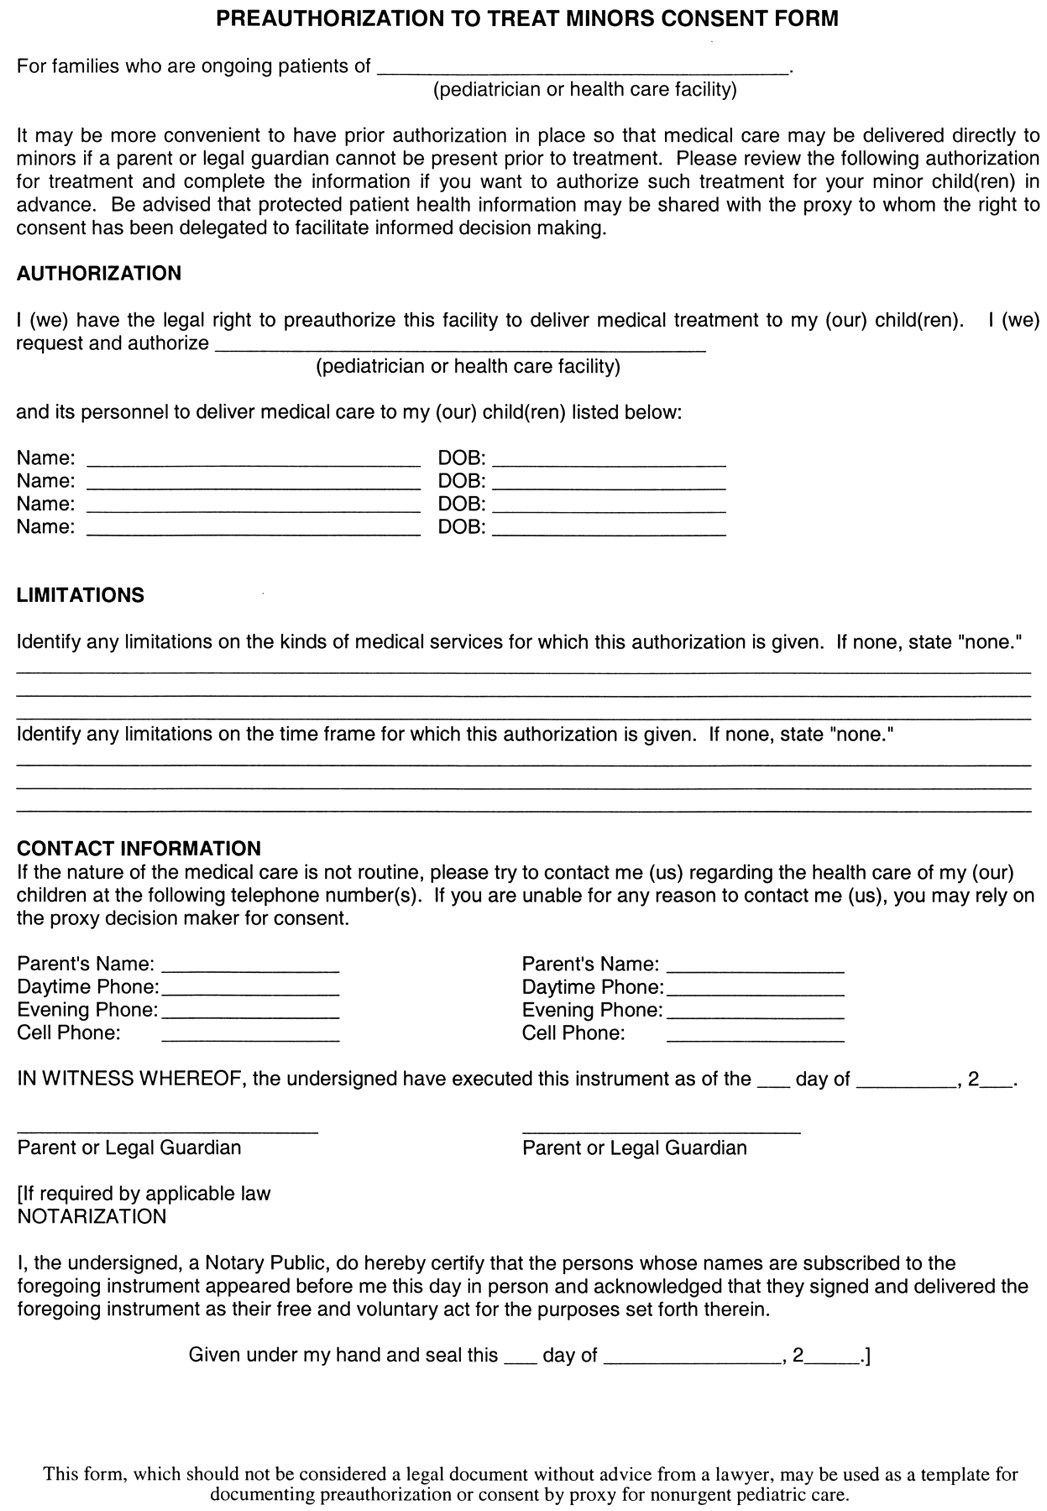 005 Stupendou Medical Treatment Authorization And Consent Form Template High Def Full